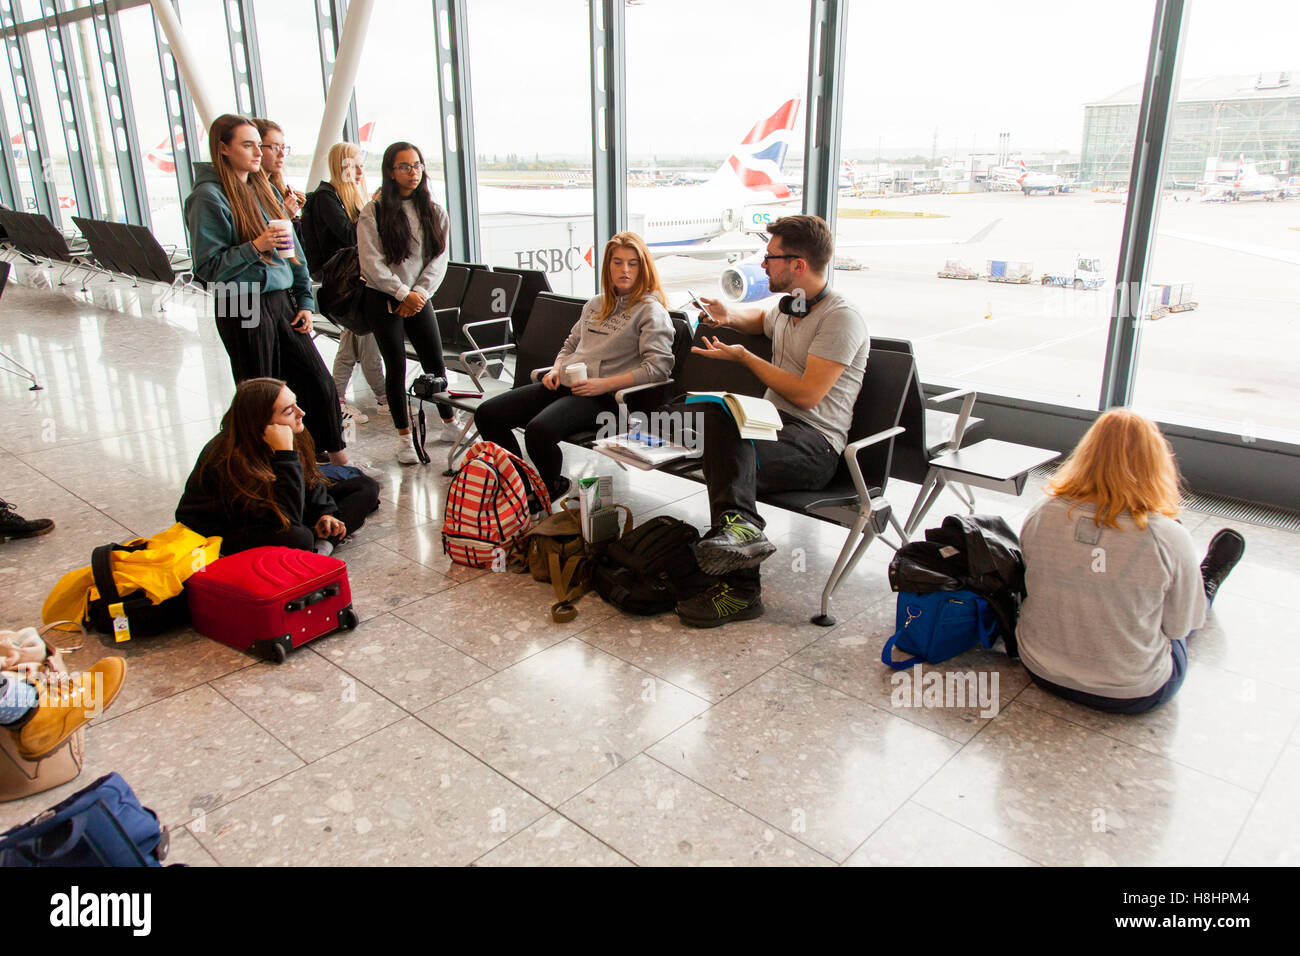 Terminal Five, Heathrow airport, London, England, United Kingdom. - Stock Image